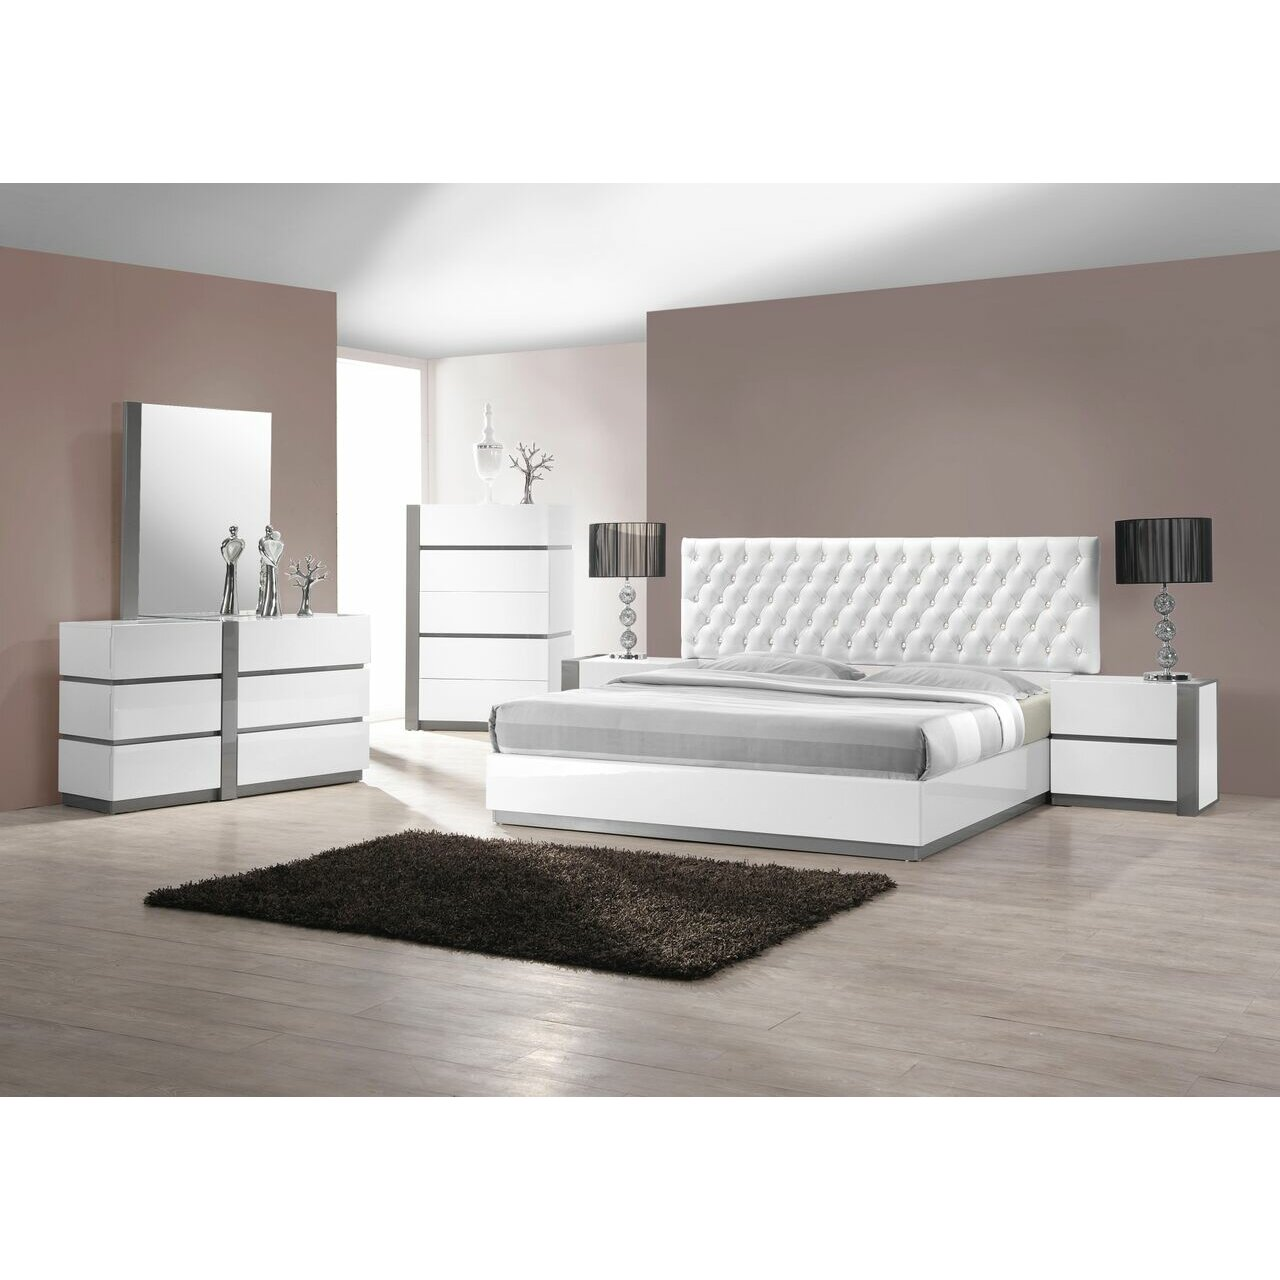 Modern Contemporary Bedroom Sets Modern Contemporary Bedroom Sets Allmodern